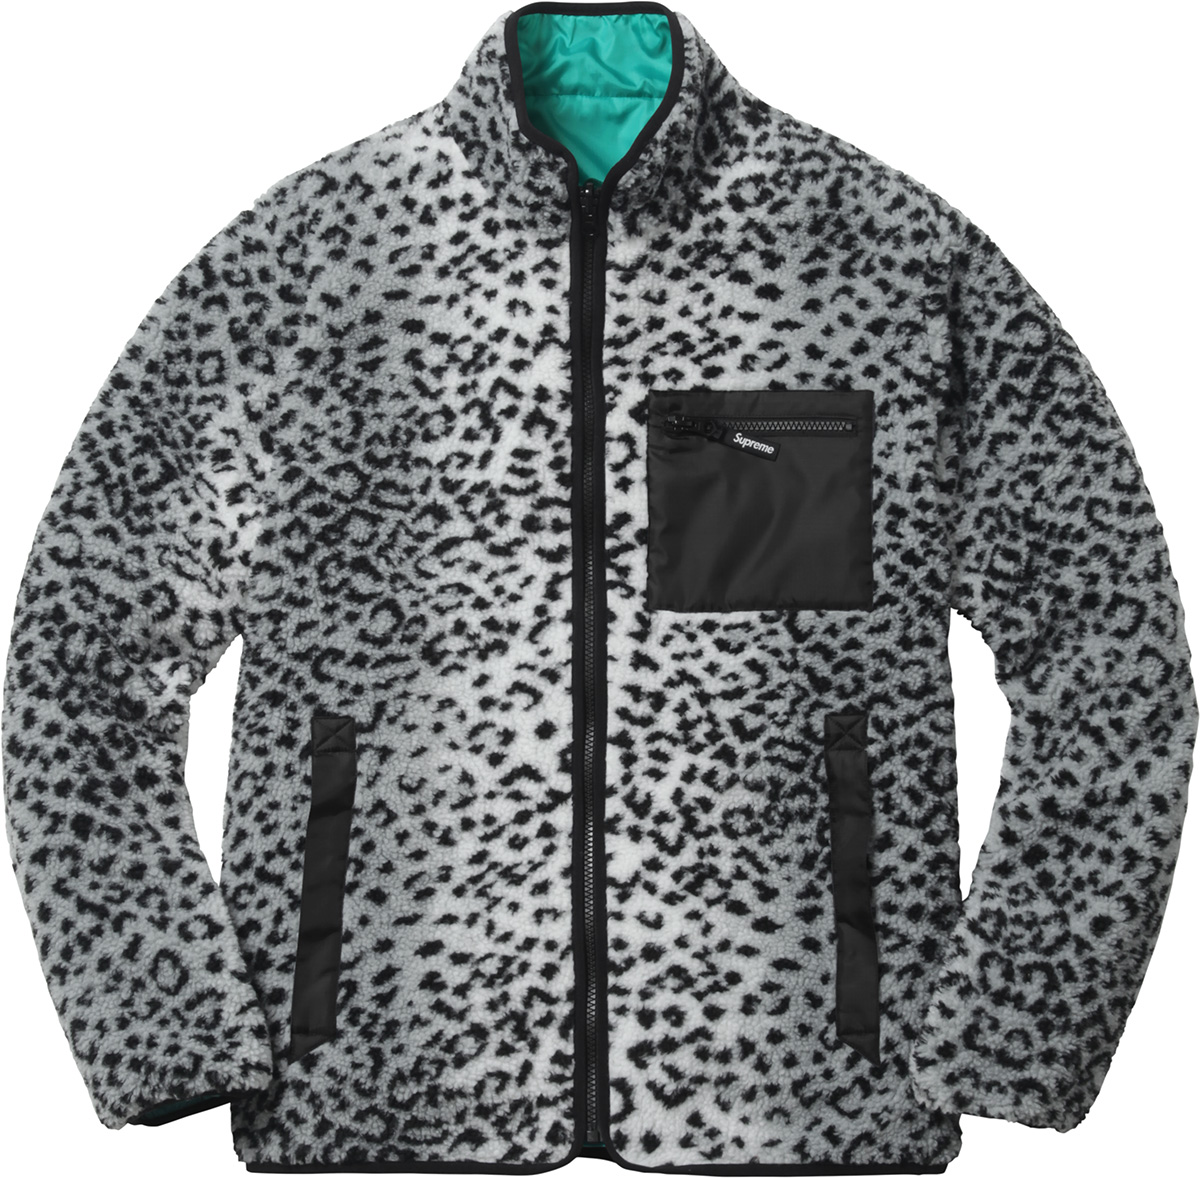 supreme-2017aw-fall-winter-leopard-fleece-reversible-jacket